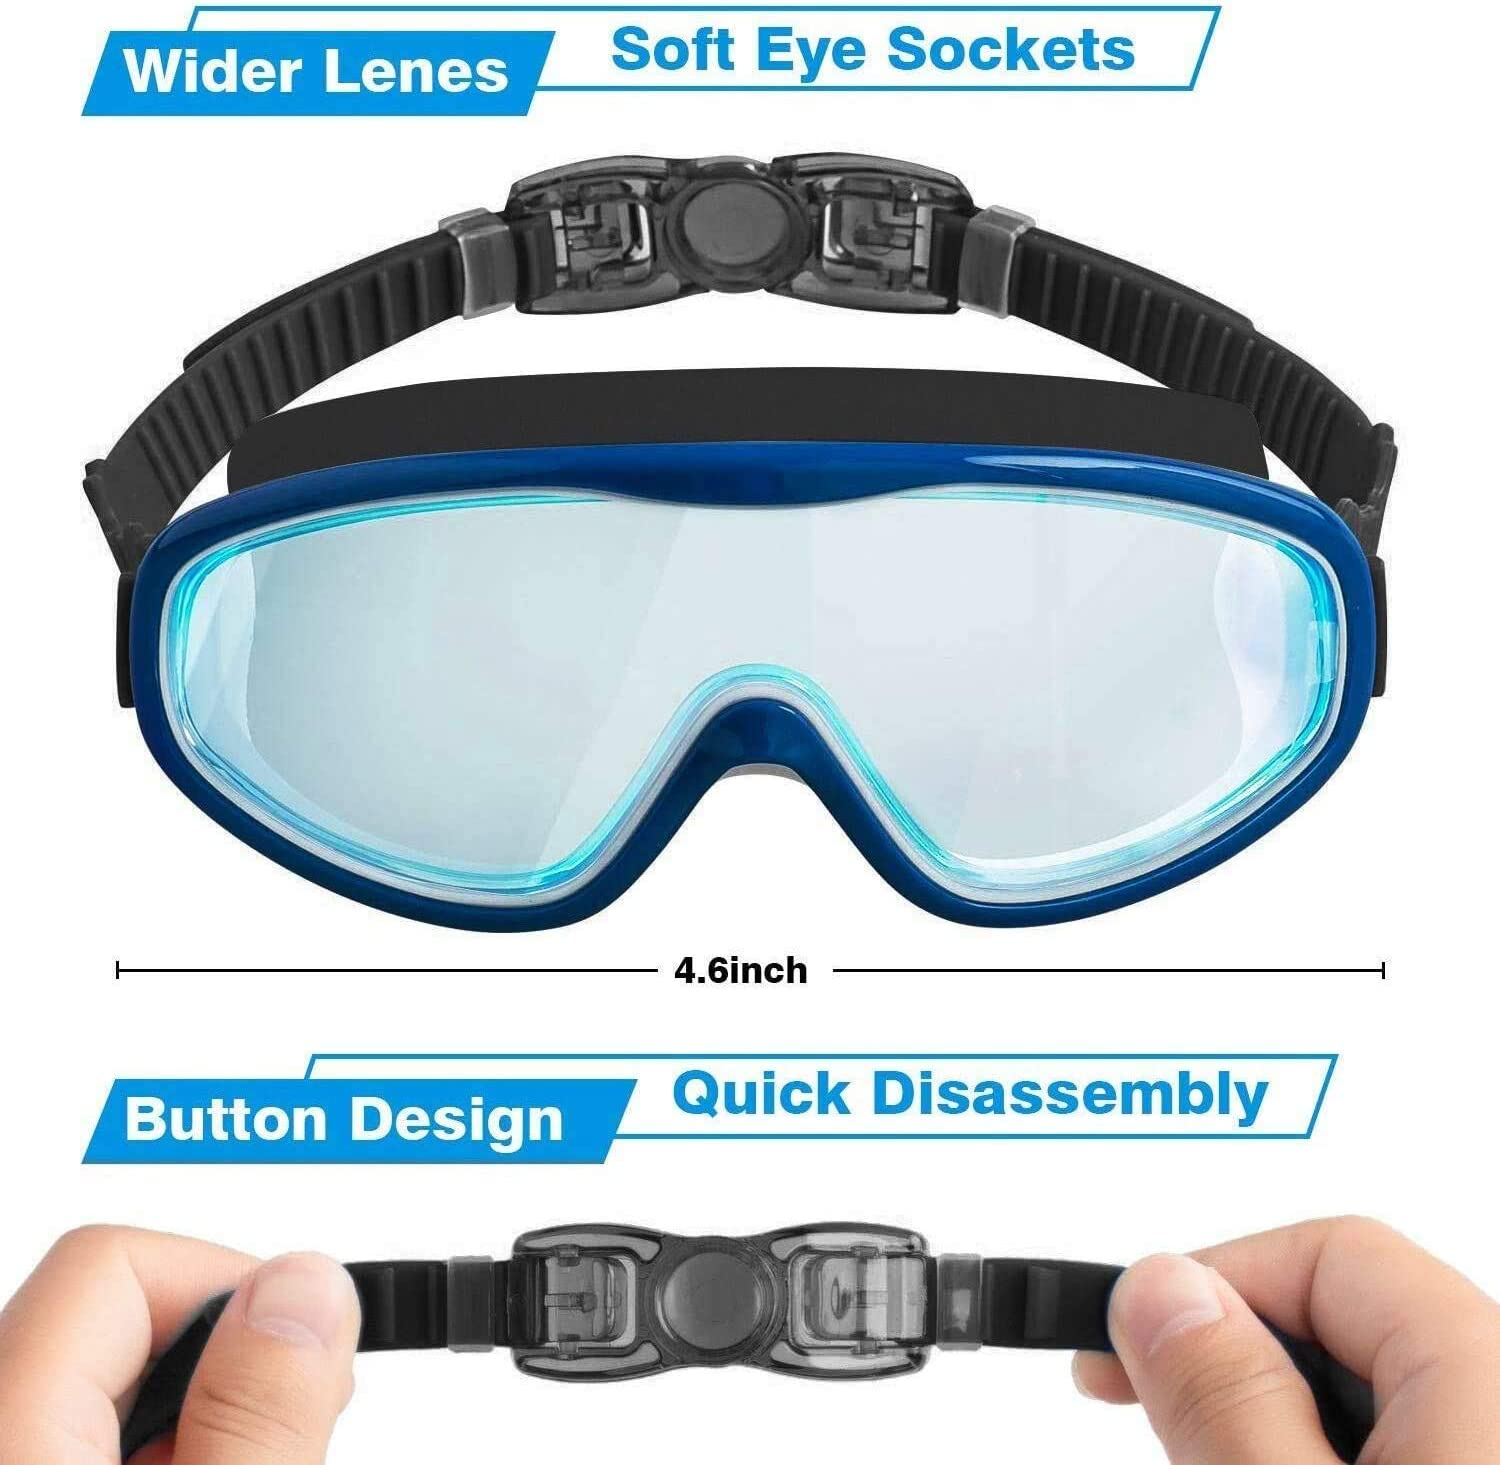 COOLOO Kid Swim Goggles,2 Pack Swim Glasses for Children and Adolescent Form 4 to 15 Years Old,Anti-Fog,Waterproof,UV Protection,NO Leaking